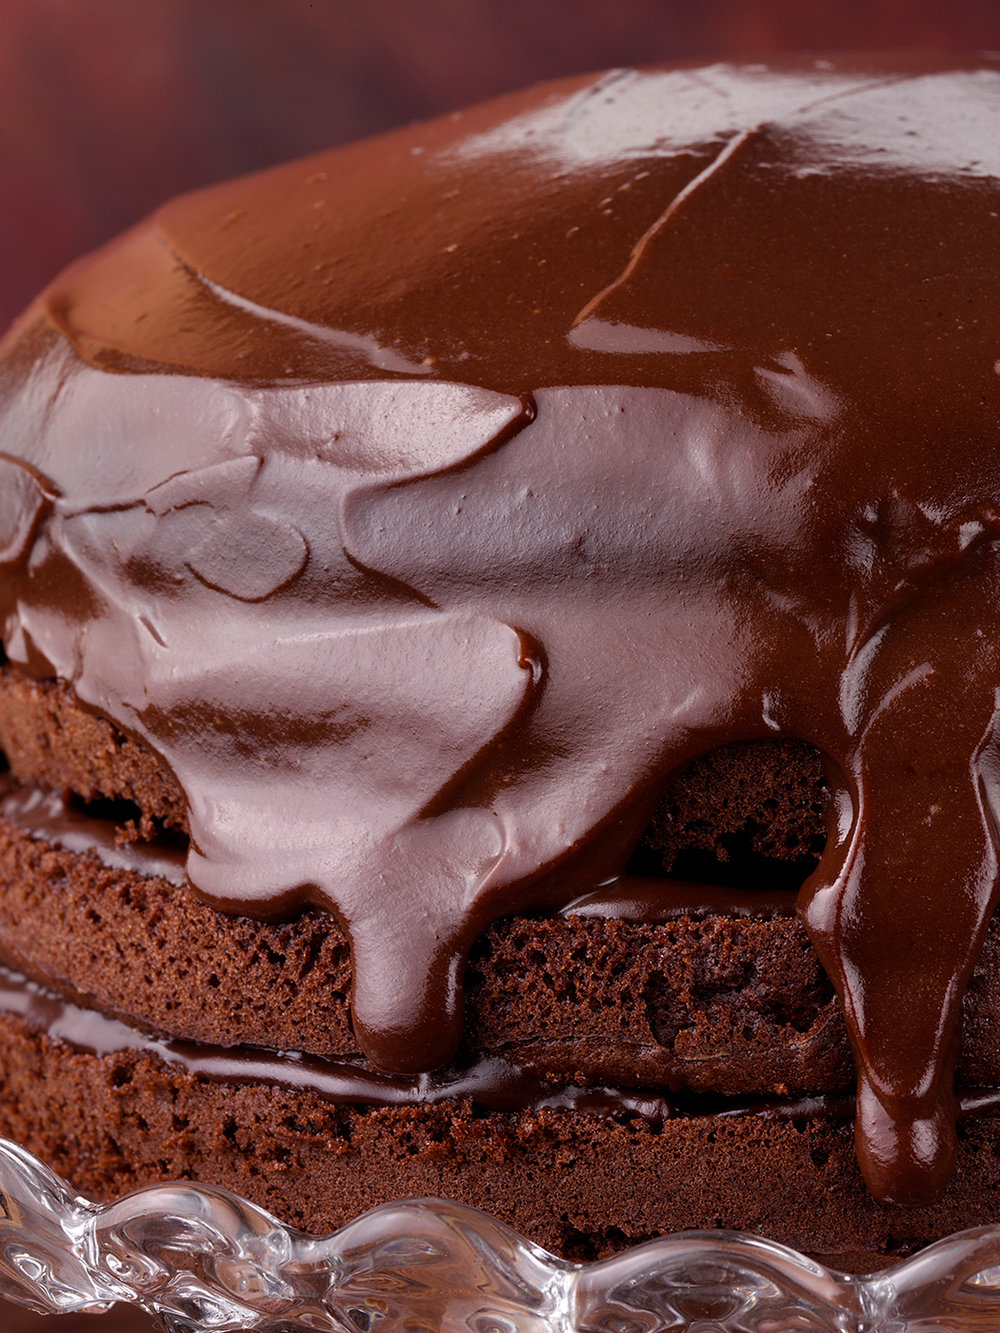 Chocolate Mocha cake with chocolate frosting